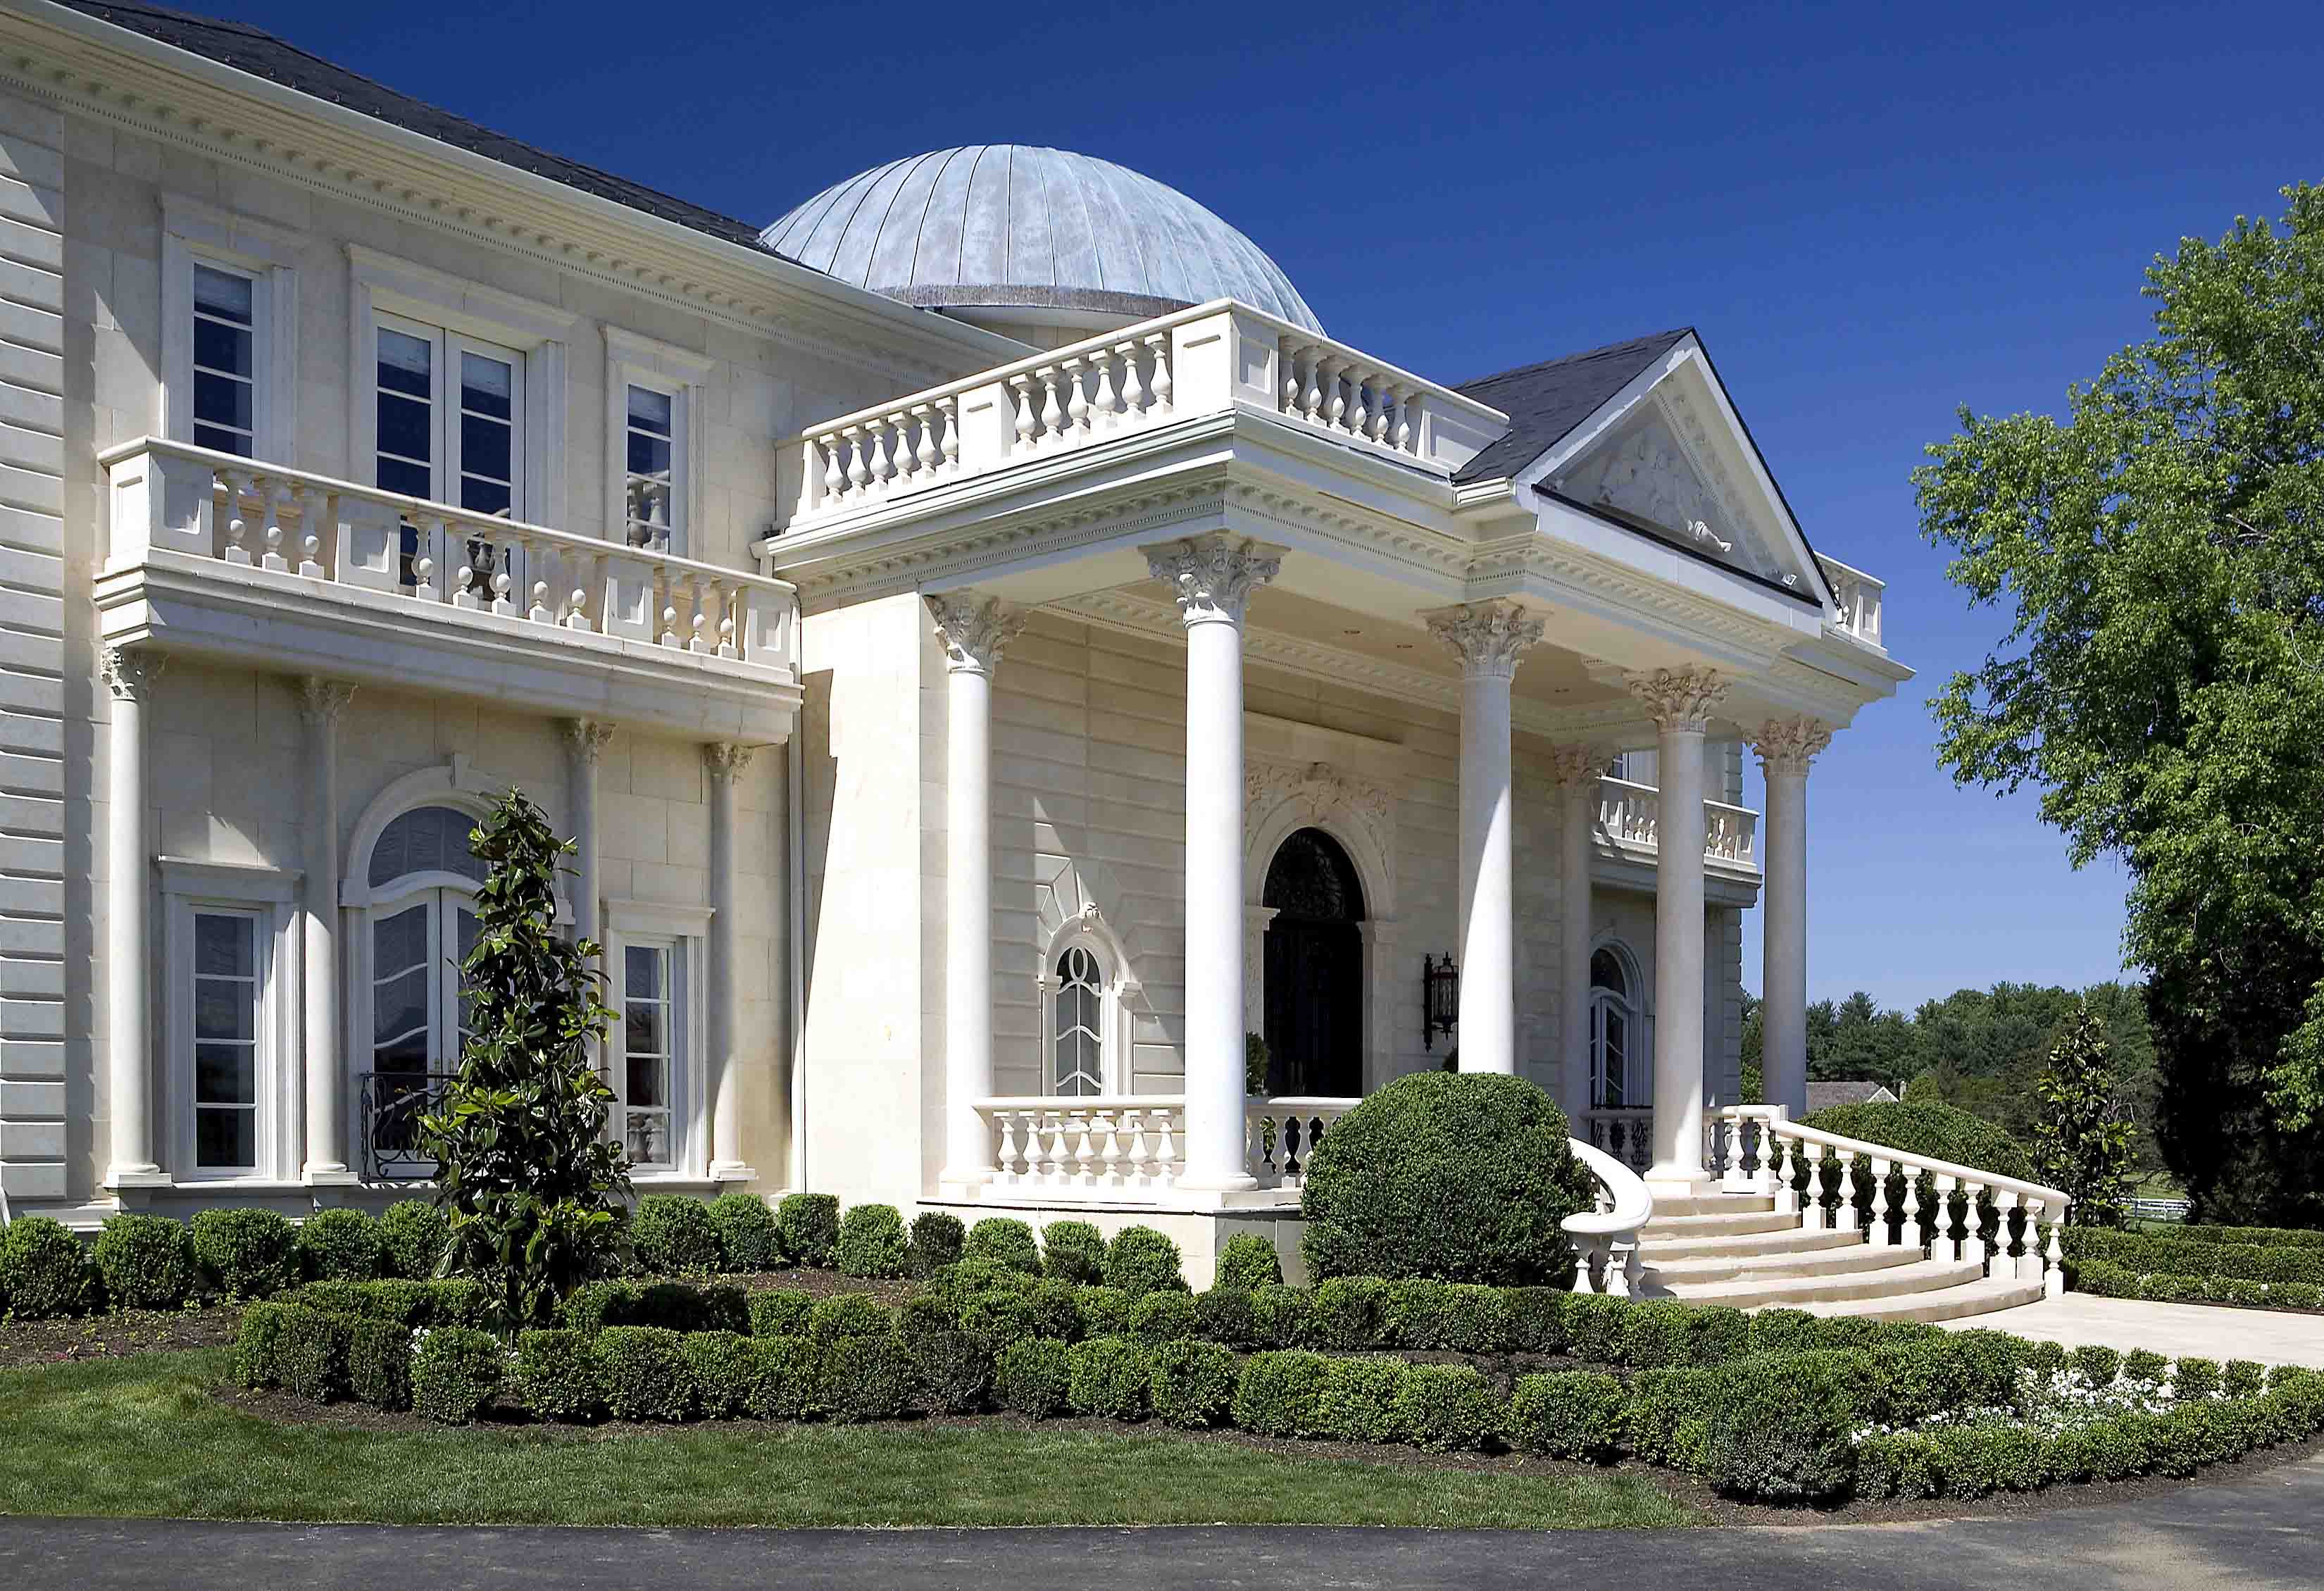 Entrance of luxury residential property in Potomac, Maryland